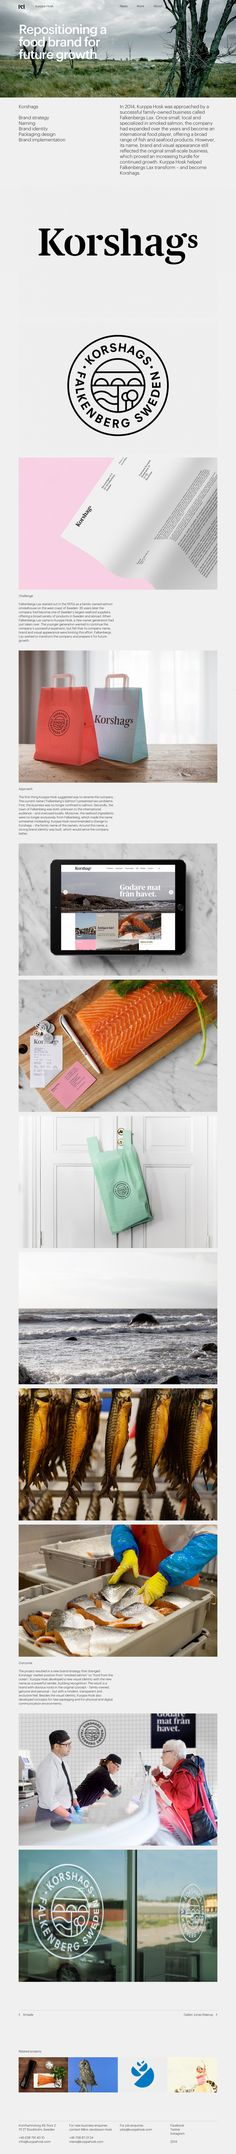 In 2014, Kurppa Hosk was approached by a successful family-owned business called Falkenbergs Lax. Once small, local and specialized in smoked salmon, the company had expanded over the years and become an international food player. However, its name, brand and visual appearance still reflected the original small-scale business. Kurppa Hosk helped Falkenbergs Lax transform – and become Korshags. #Brandstrategy #Naming #Brandidentity #Packagingdesign #Brandimplementation